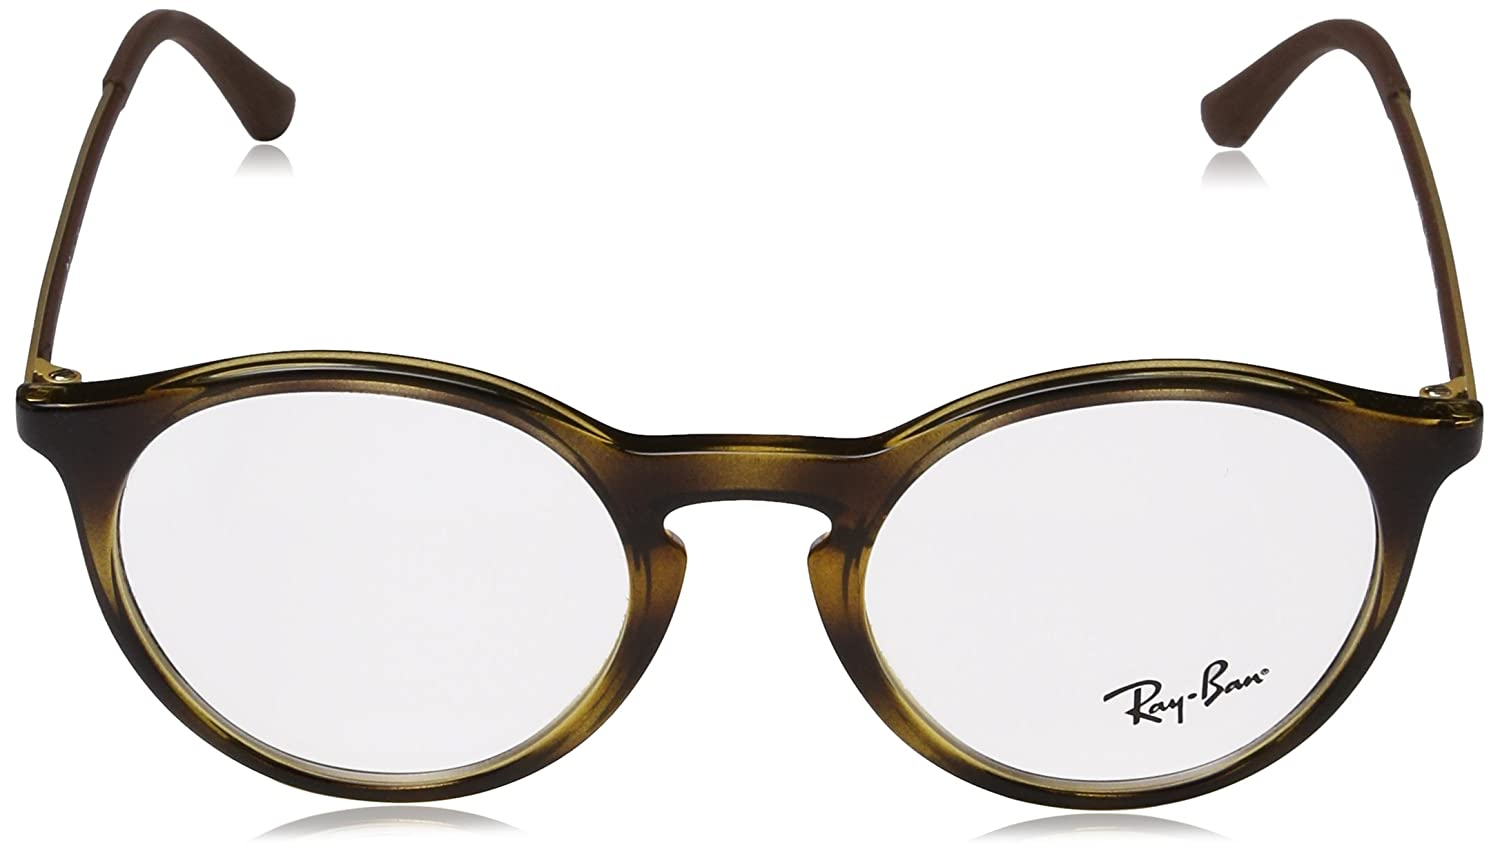 Unisex-Adults 7118 Optical Frames, Negro, 48 Ray-Ban